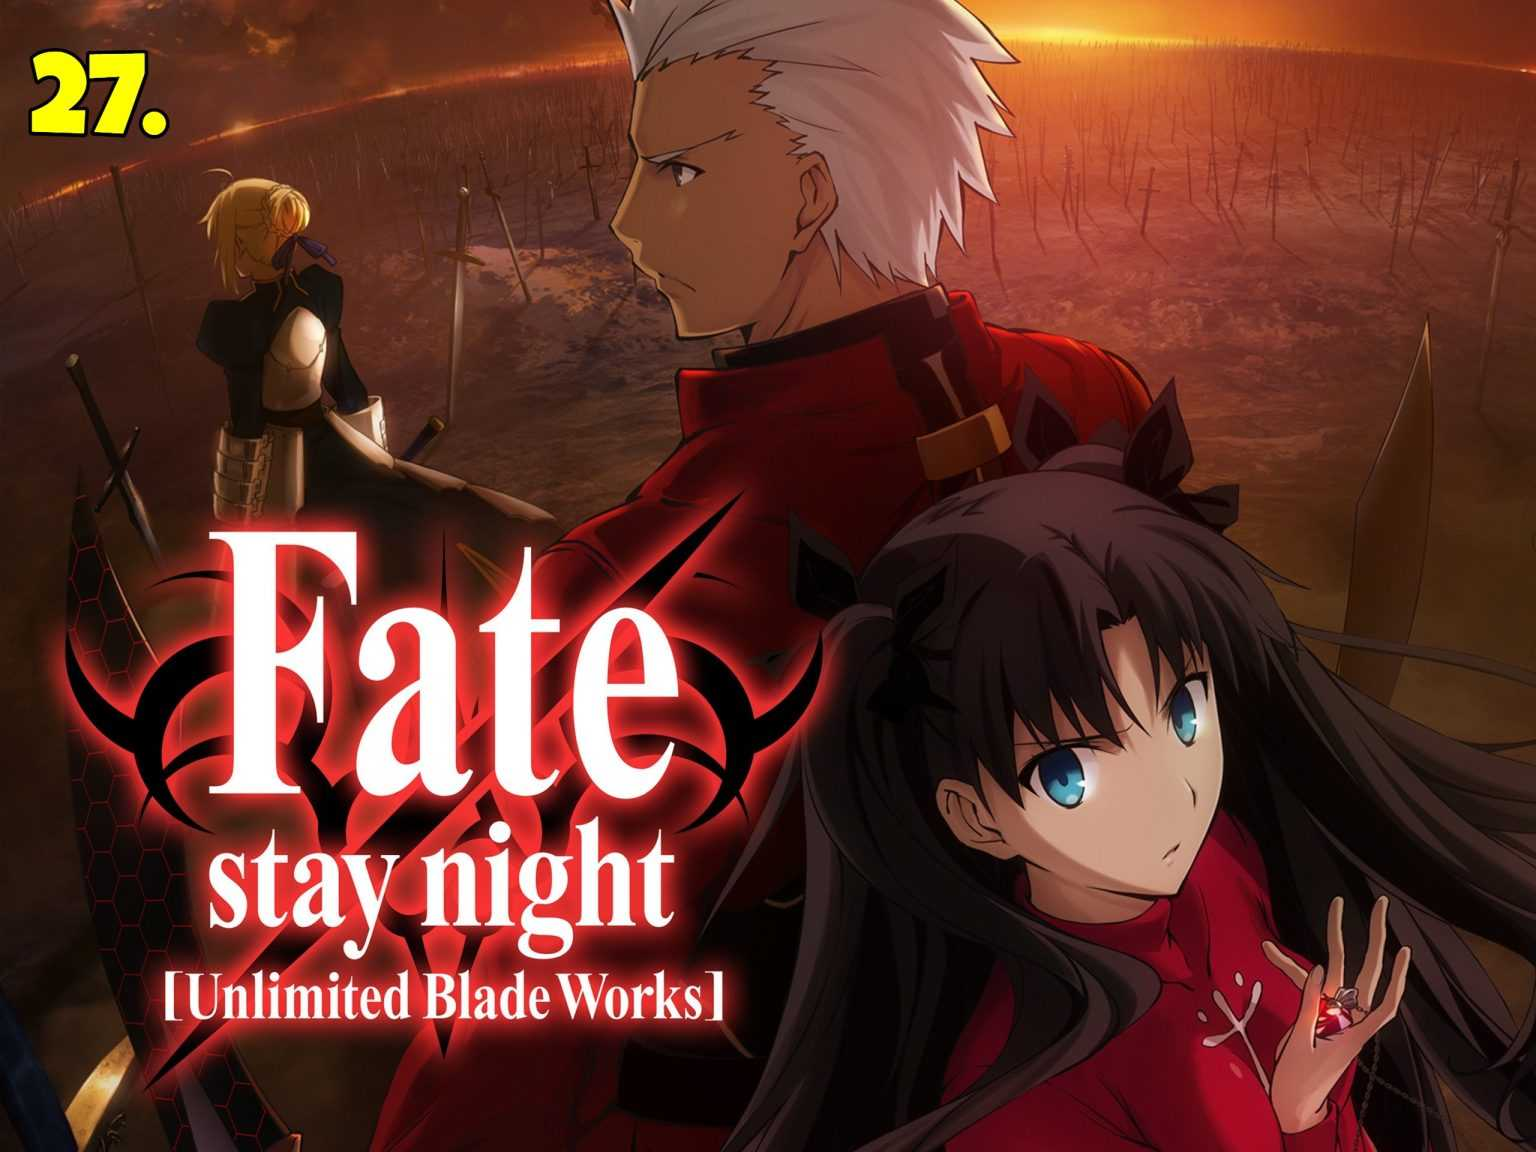 Fate-stay-night-Unlimited-Blade-Works